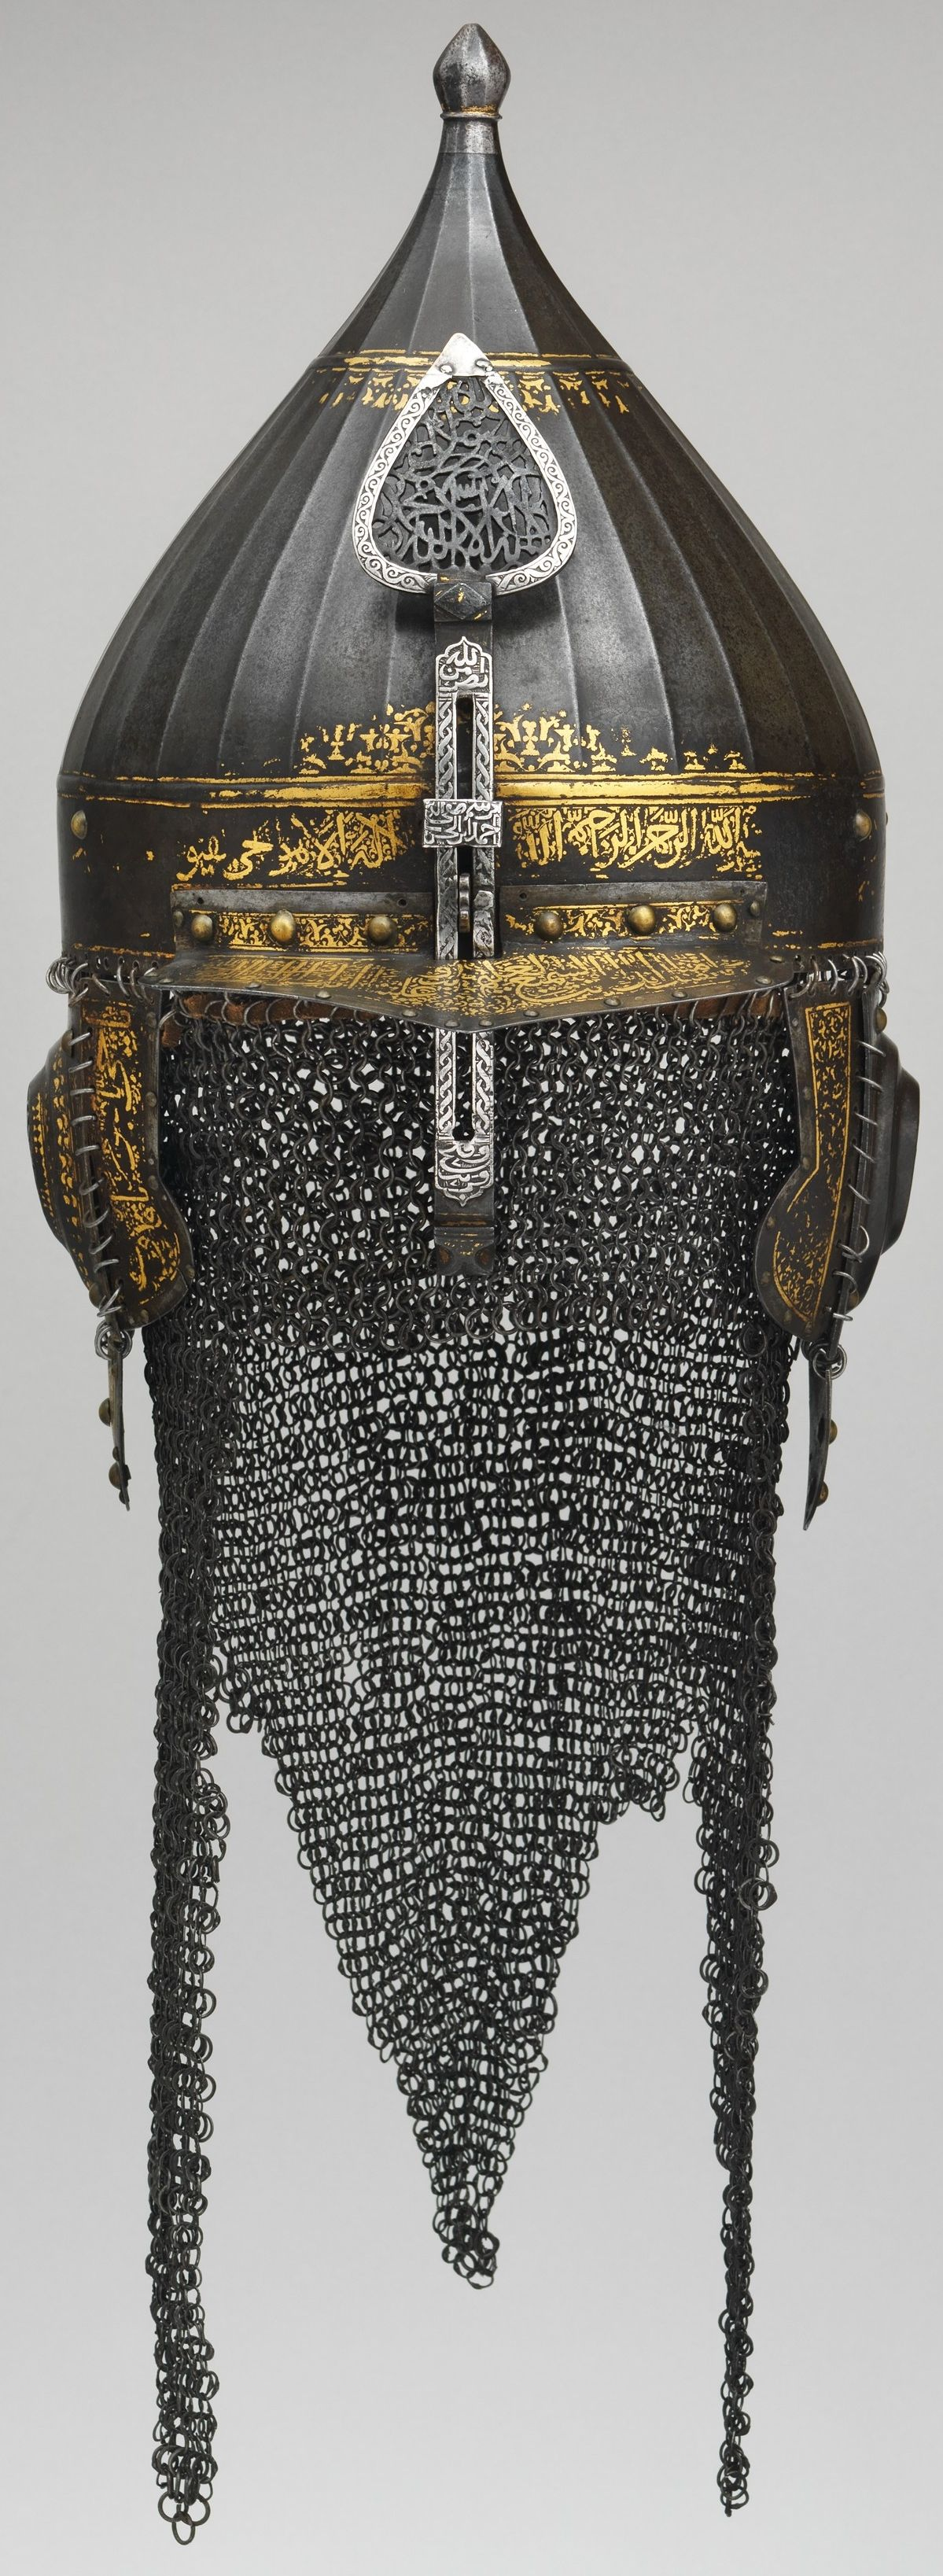 Ottoman Chichak Type Helmet 16th Century Steel Gold Silver